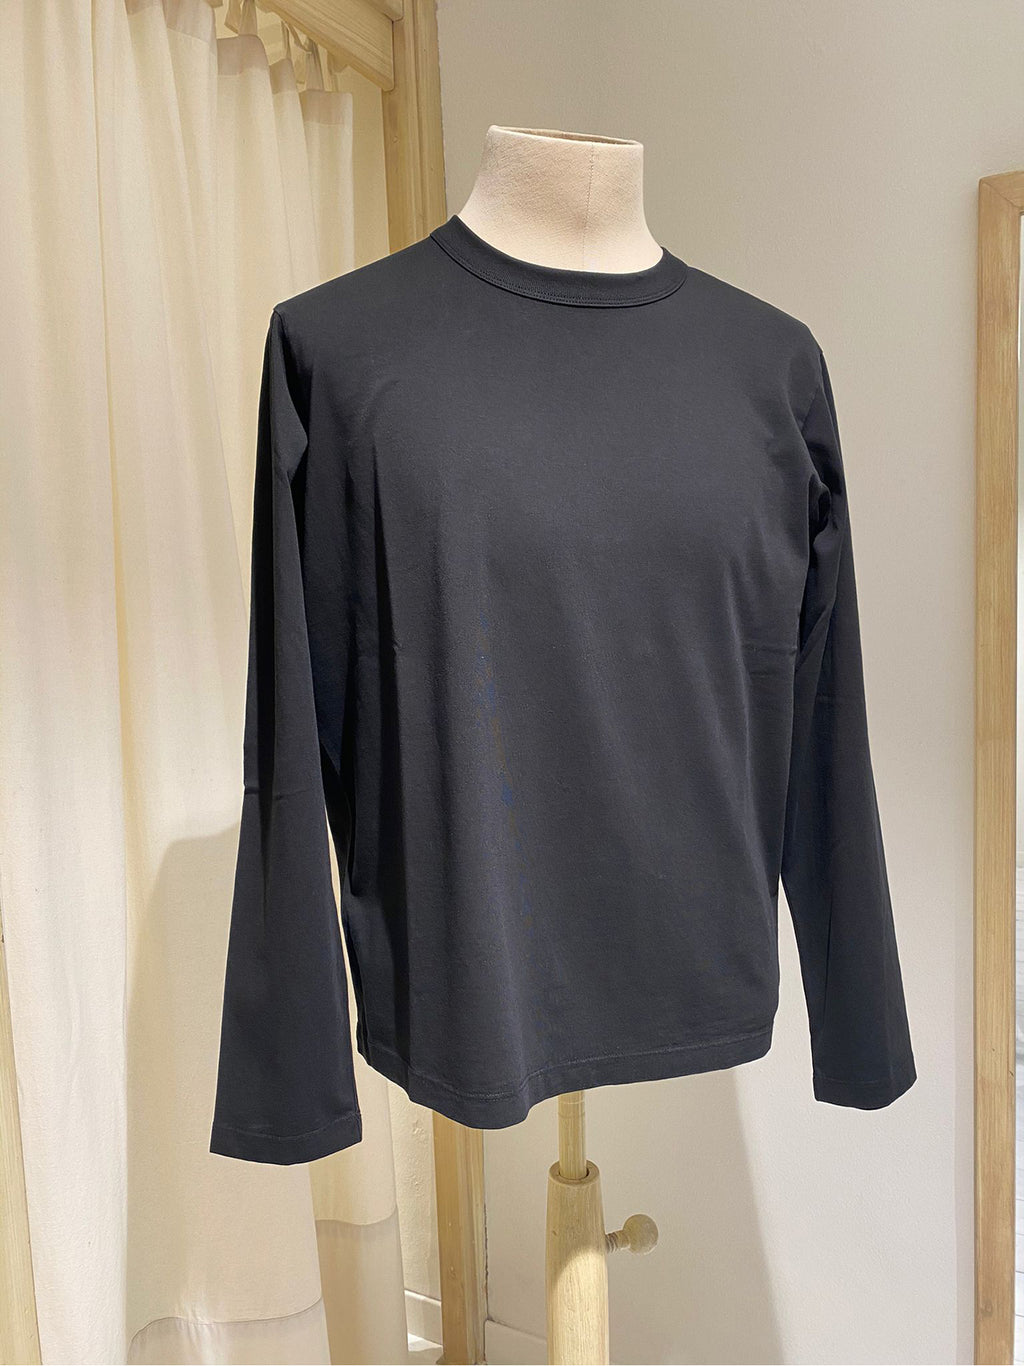 M T-shirt ML COVERT - Black